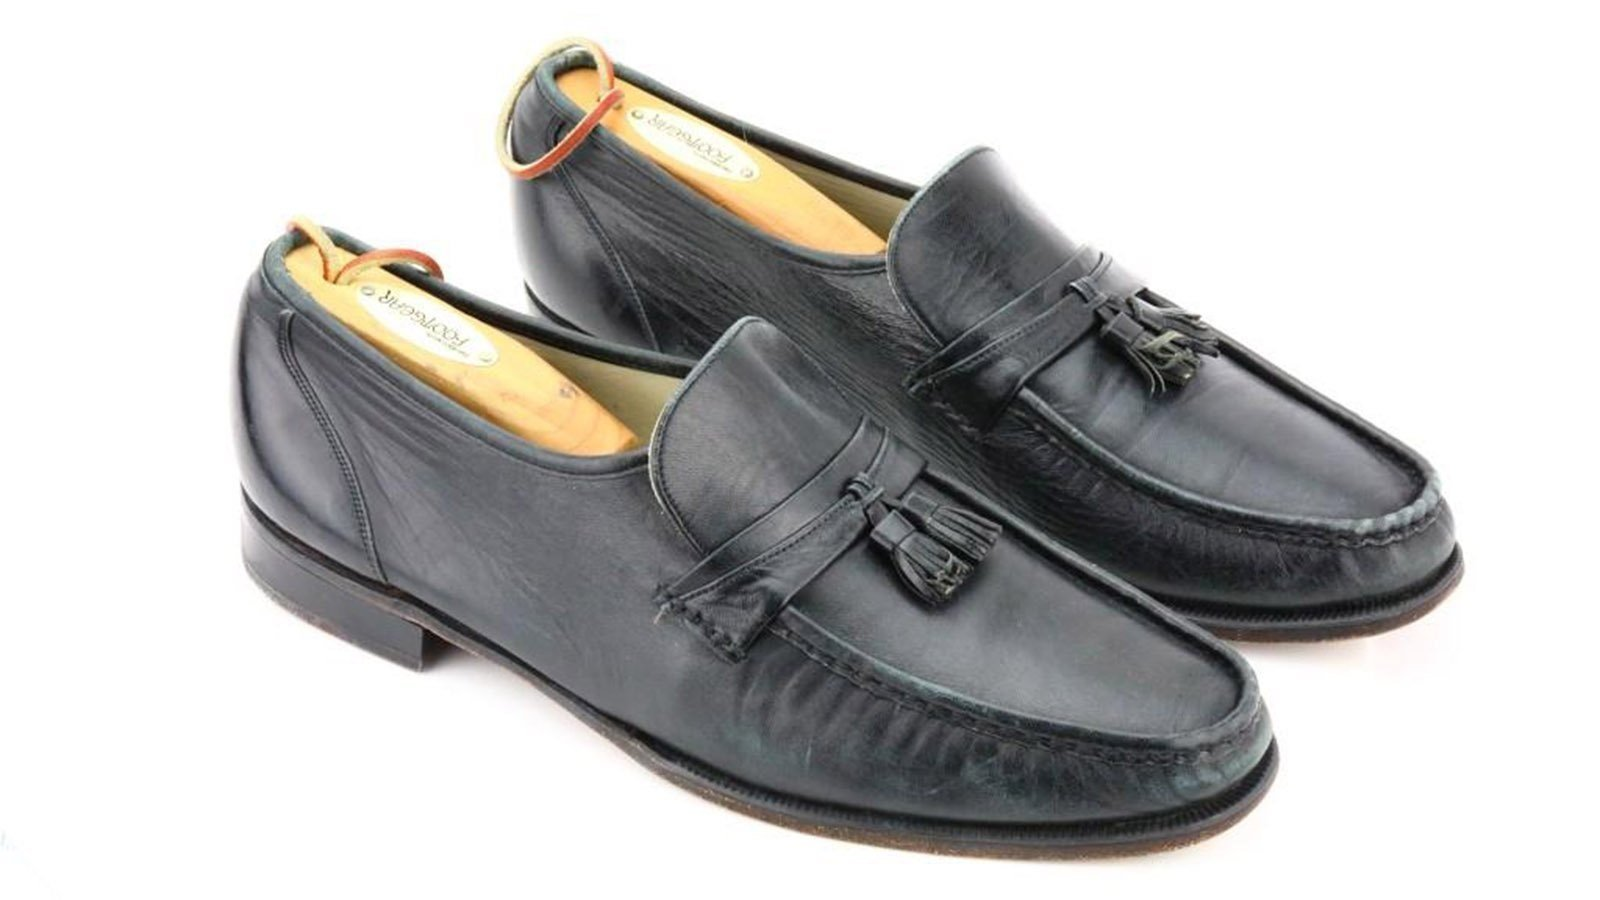 The black loafers that Michael Jackson used to perform his signature moonwalk for the first time on stage are going up for auction.